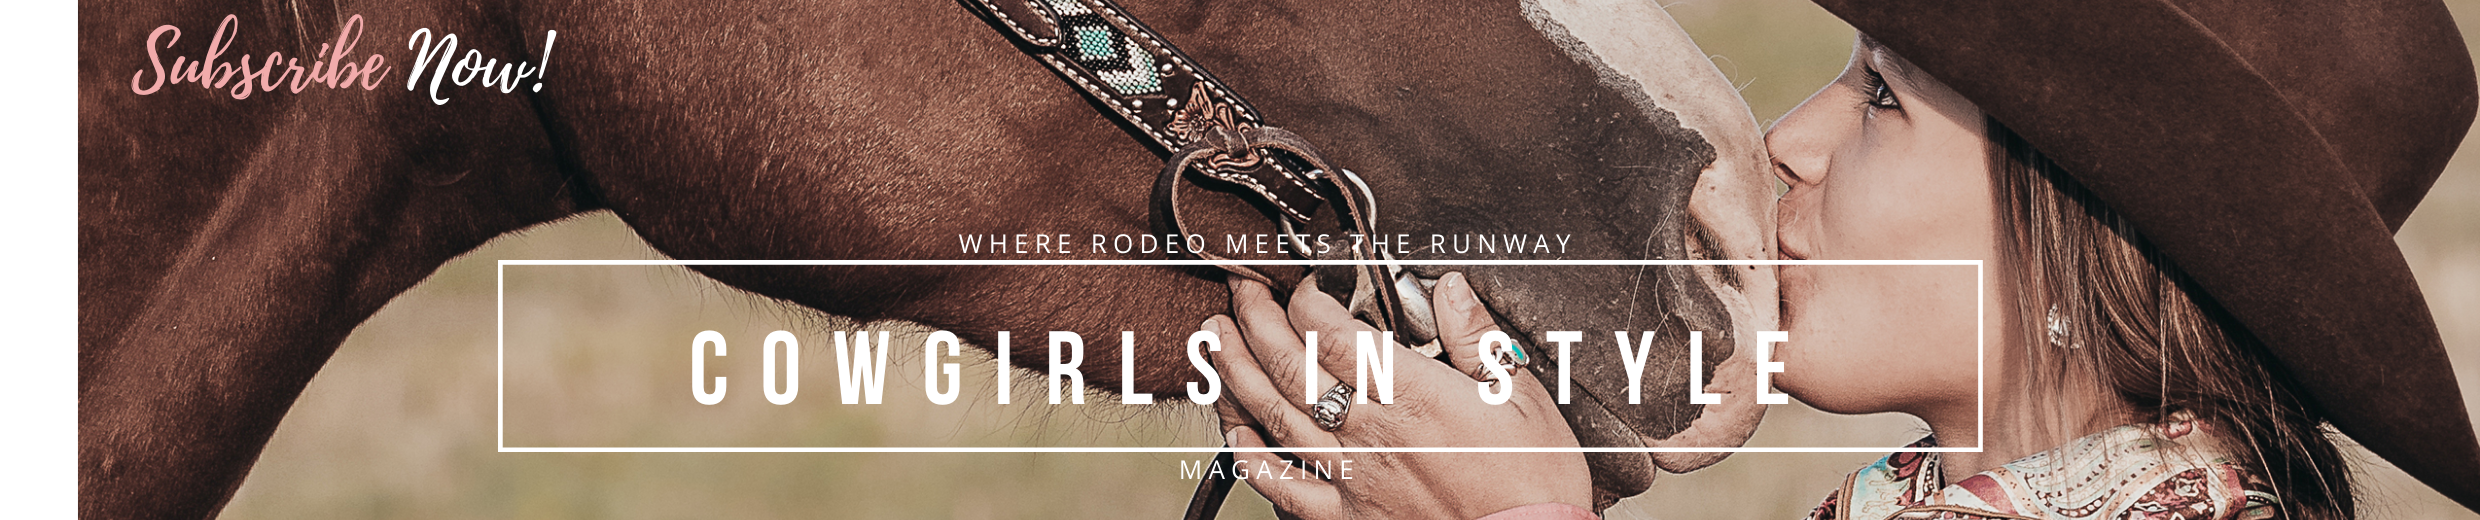 September 2019 - Cowgirls In Style Magazine